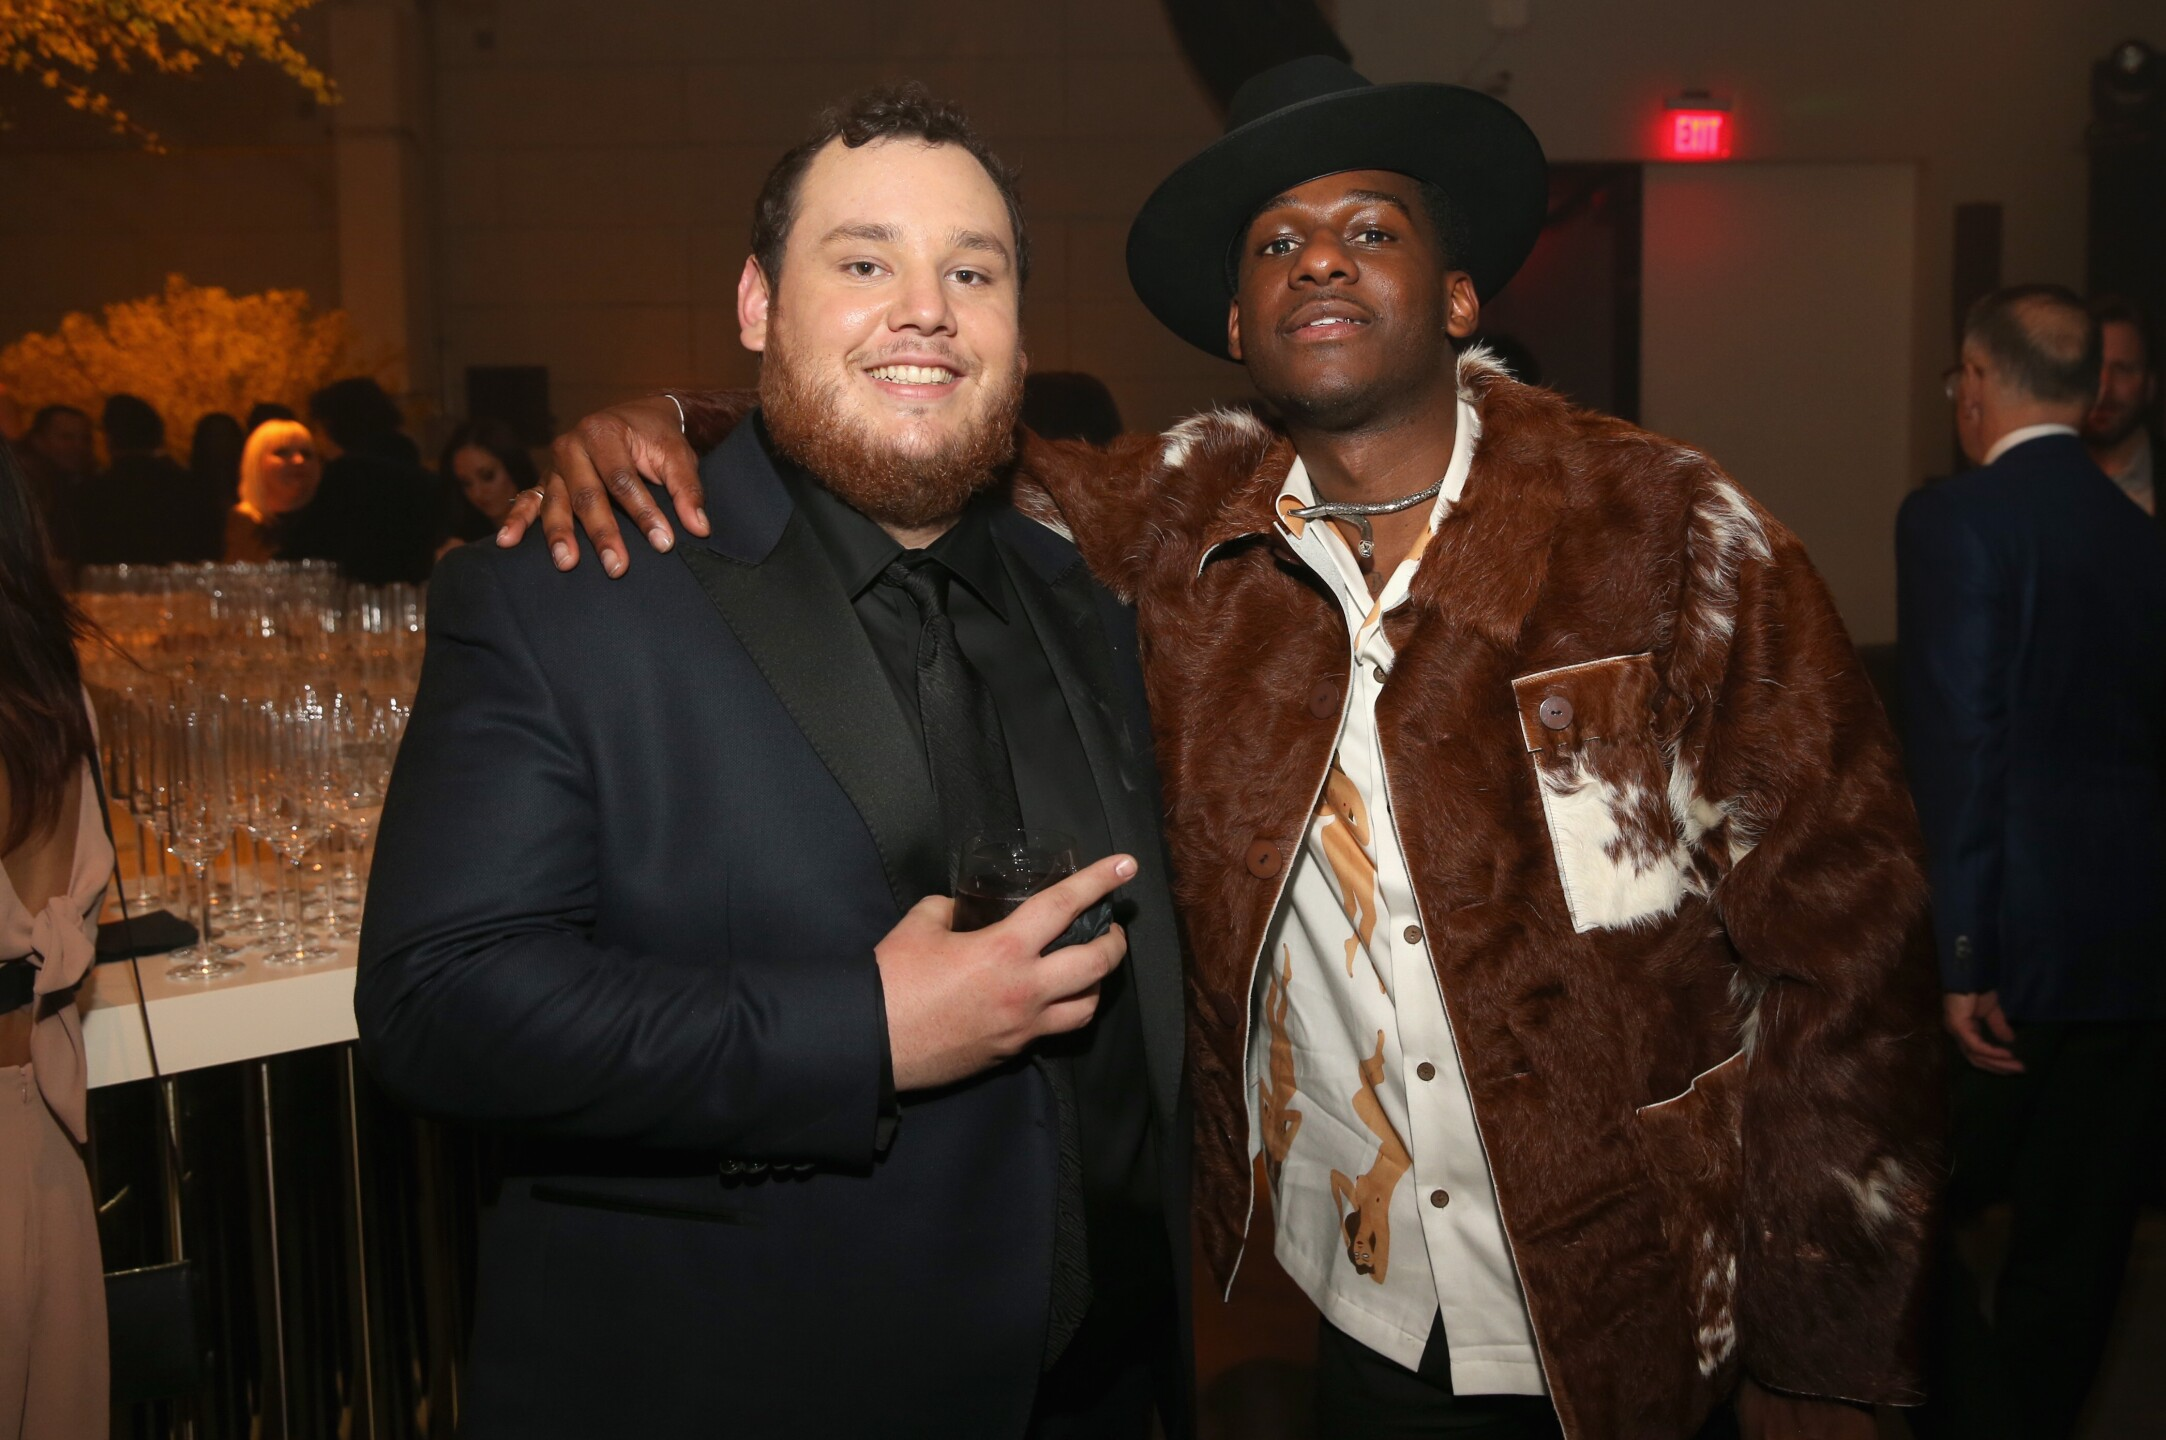 The wildest and weirdest Grammys' outfits. Leon Bridges and Luke Combs.